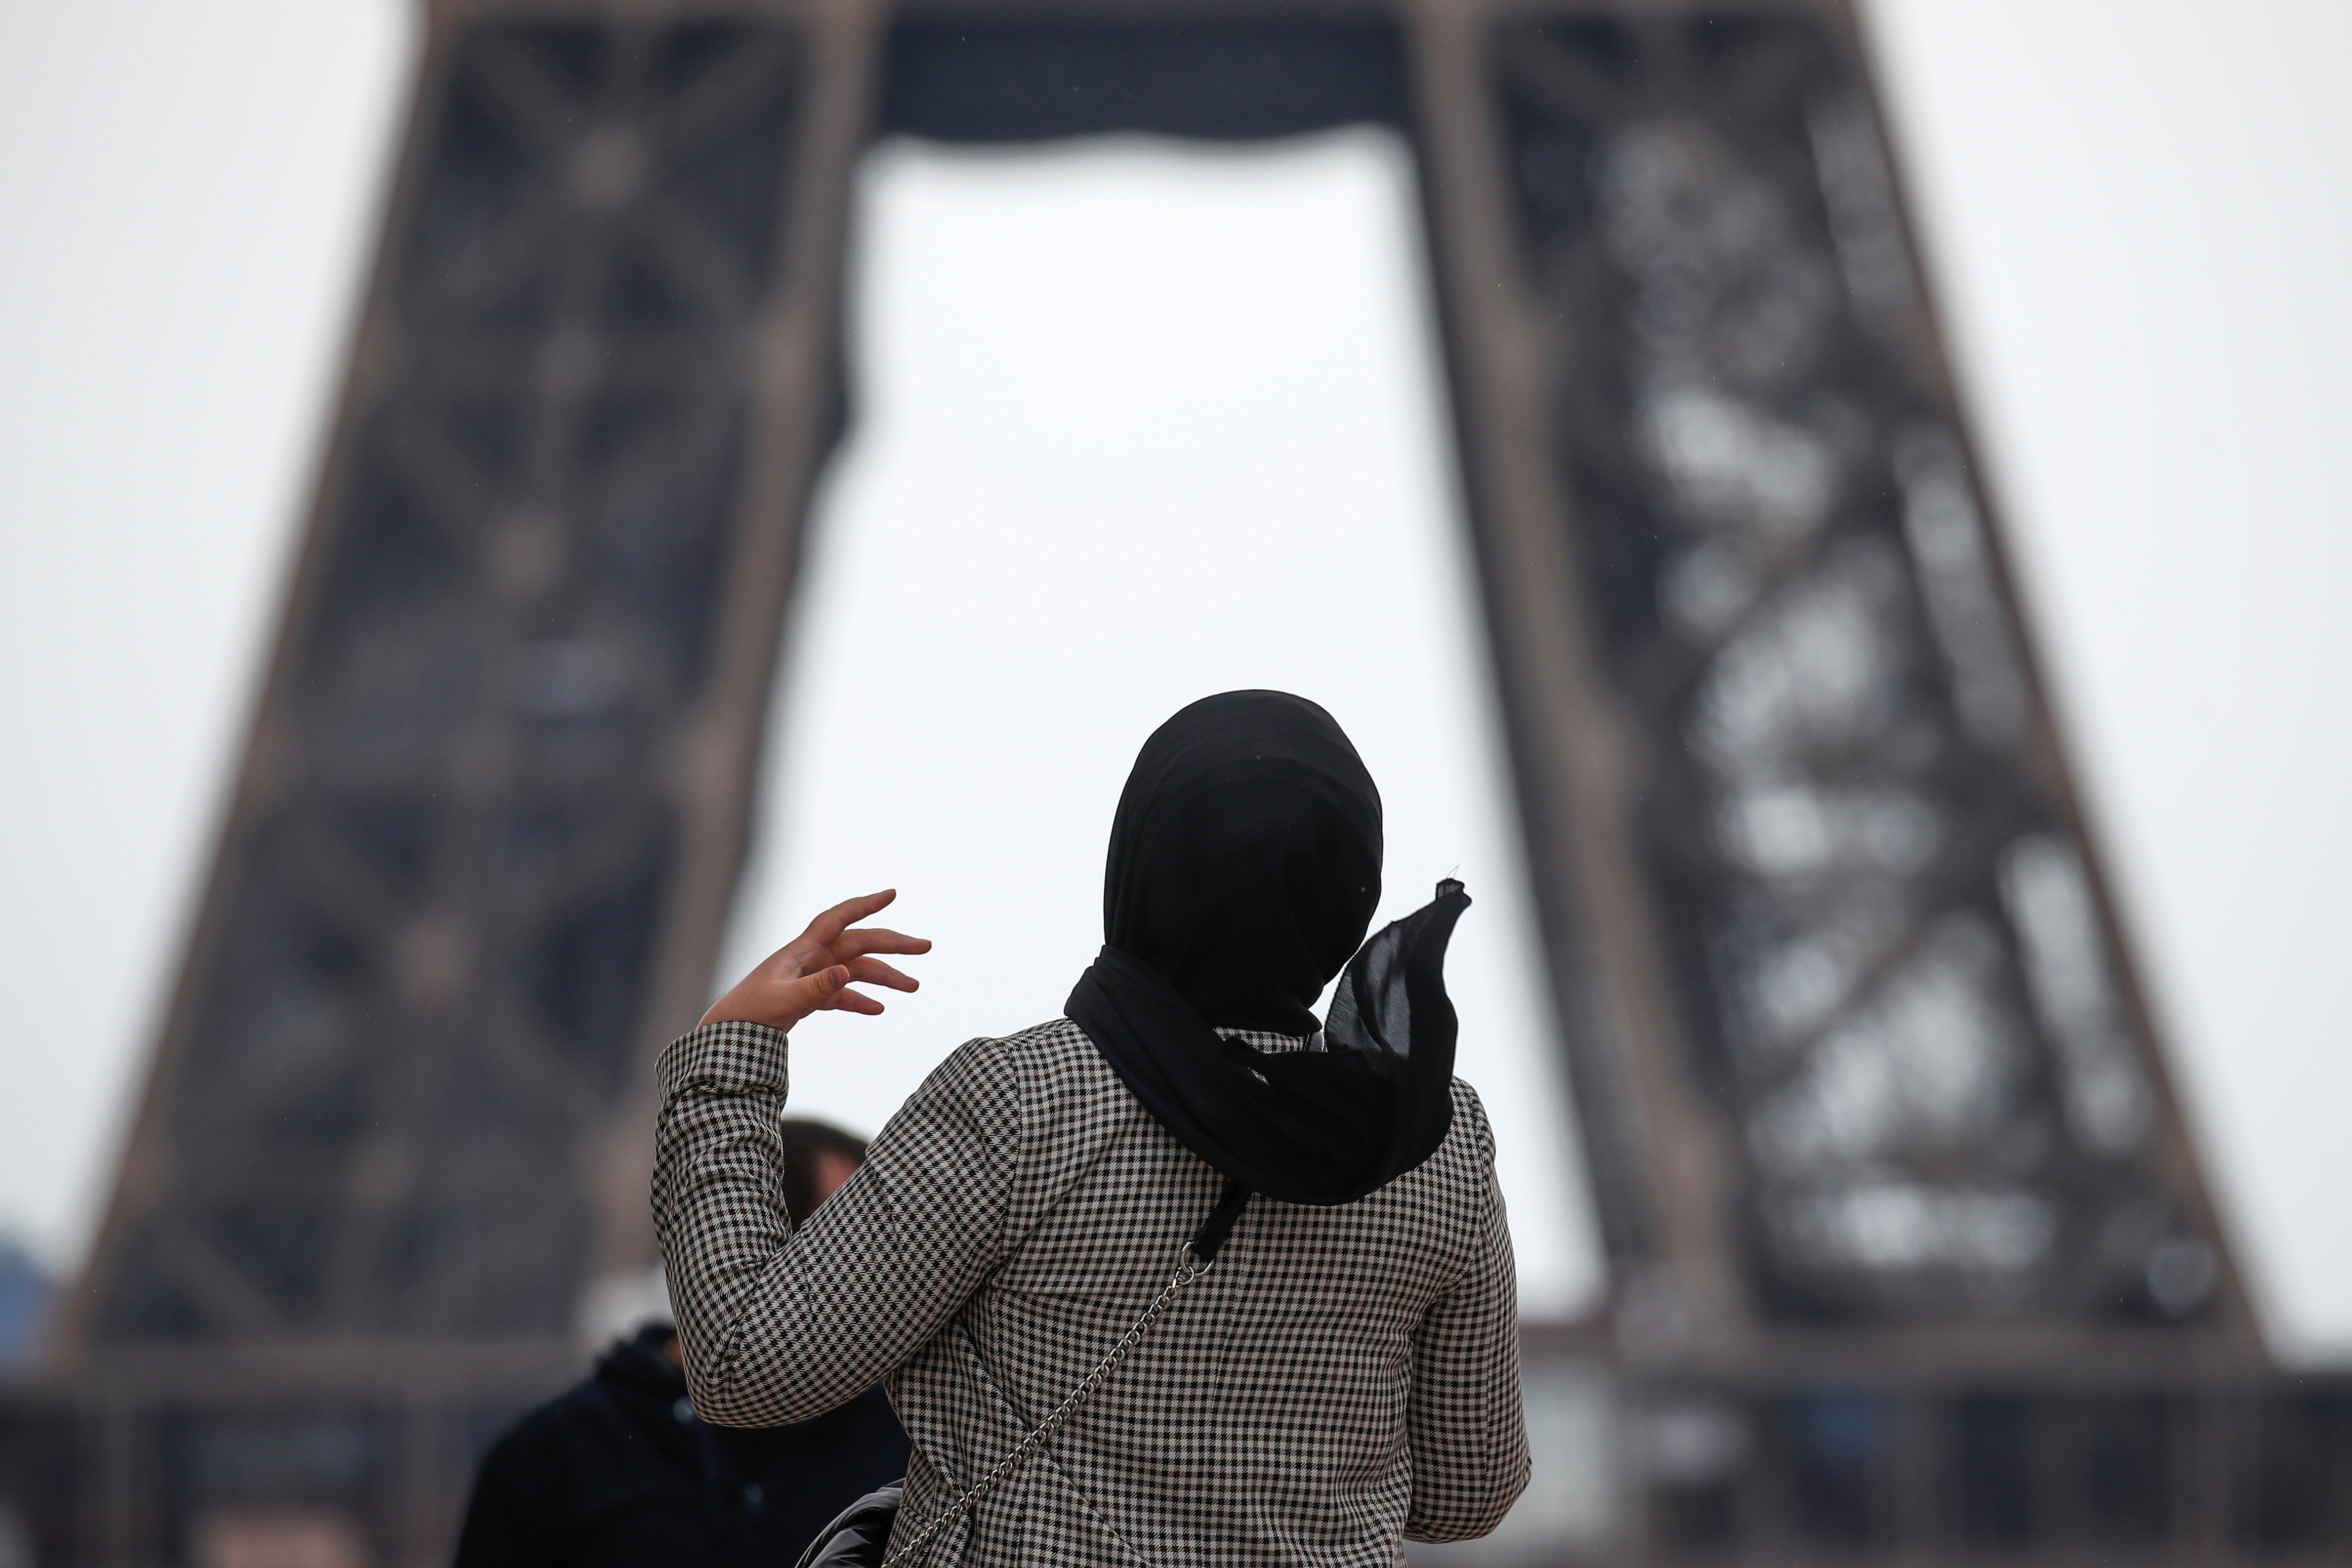 A woman wearing a hijab walks at Trocadero square near the Eiffel Tower in Paris, France, May 2, 2021. Picture taken on May 2, 2021. REUTERS/Gonzalo Fuentes